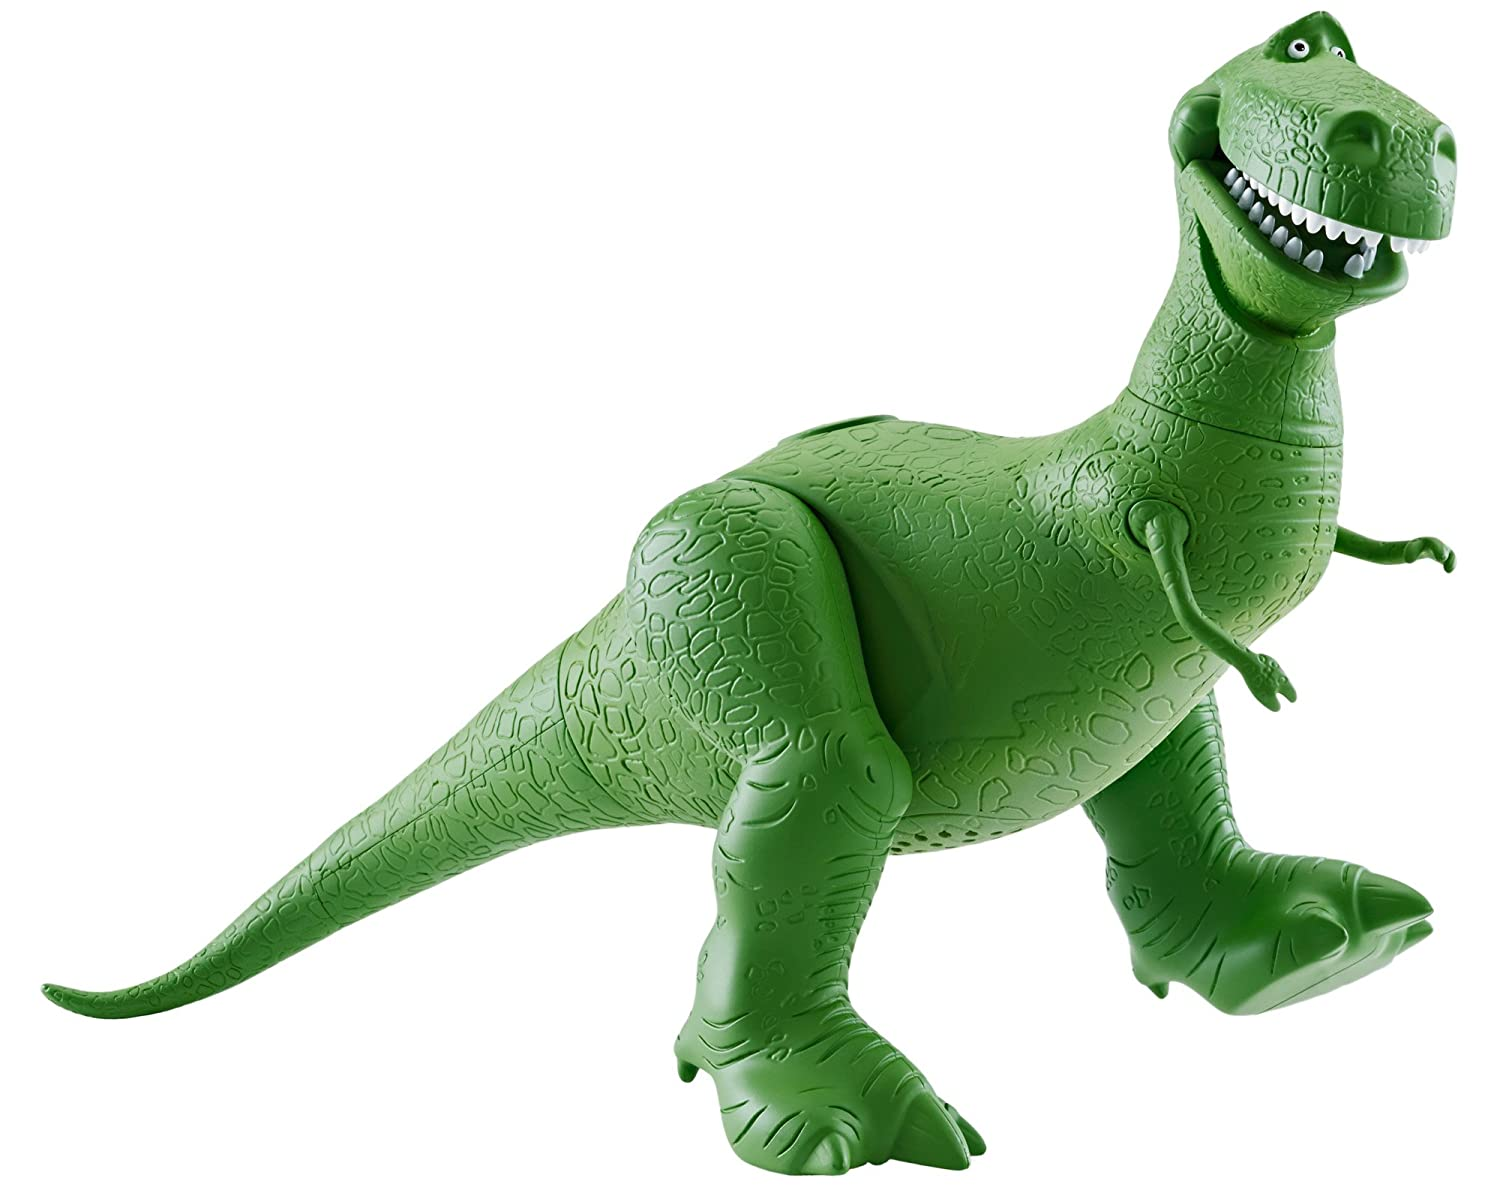 Mattel Disney/Pixar Toy Story Talking Rex DRH86